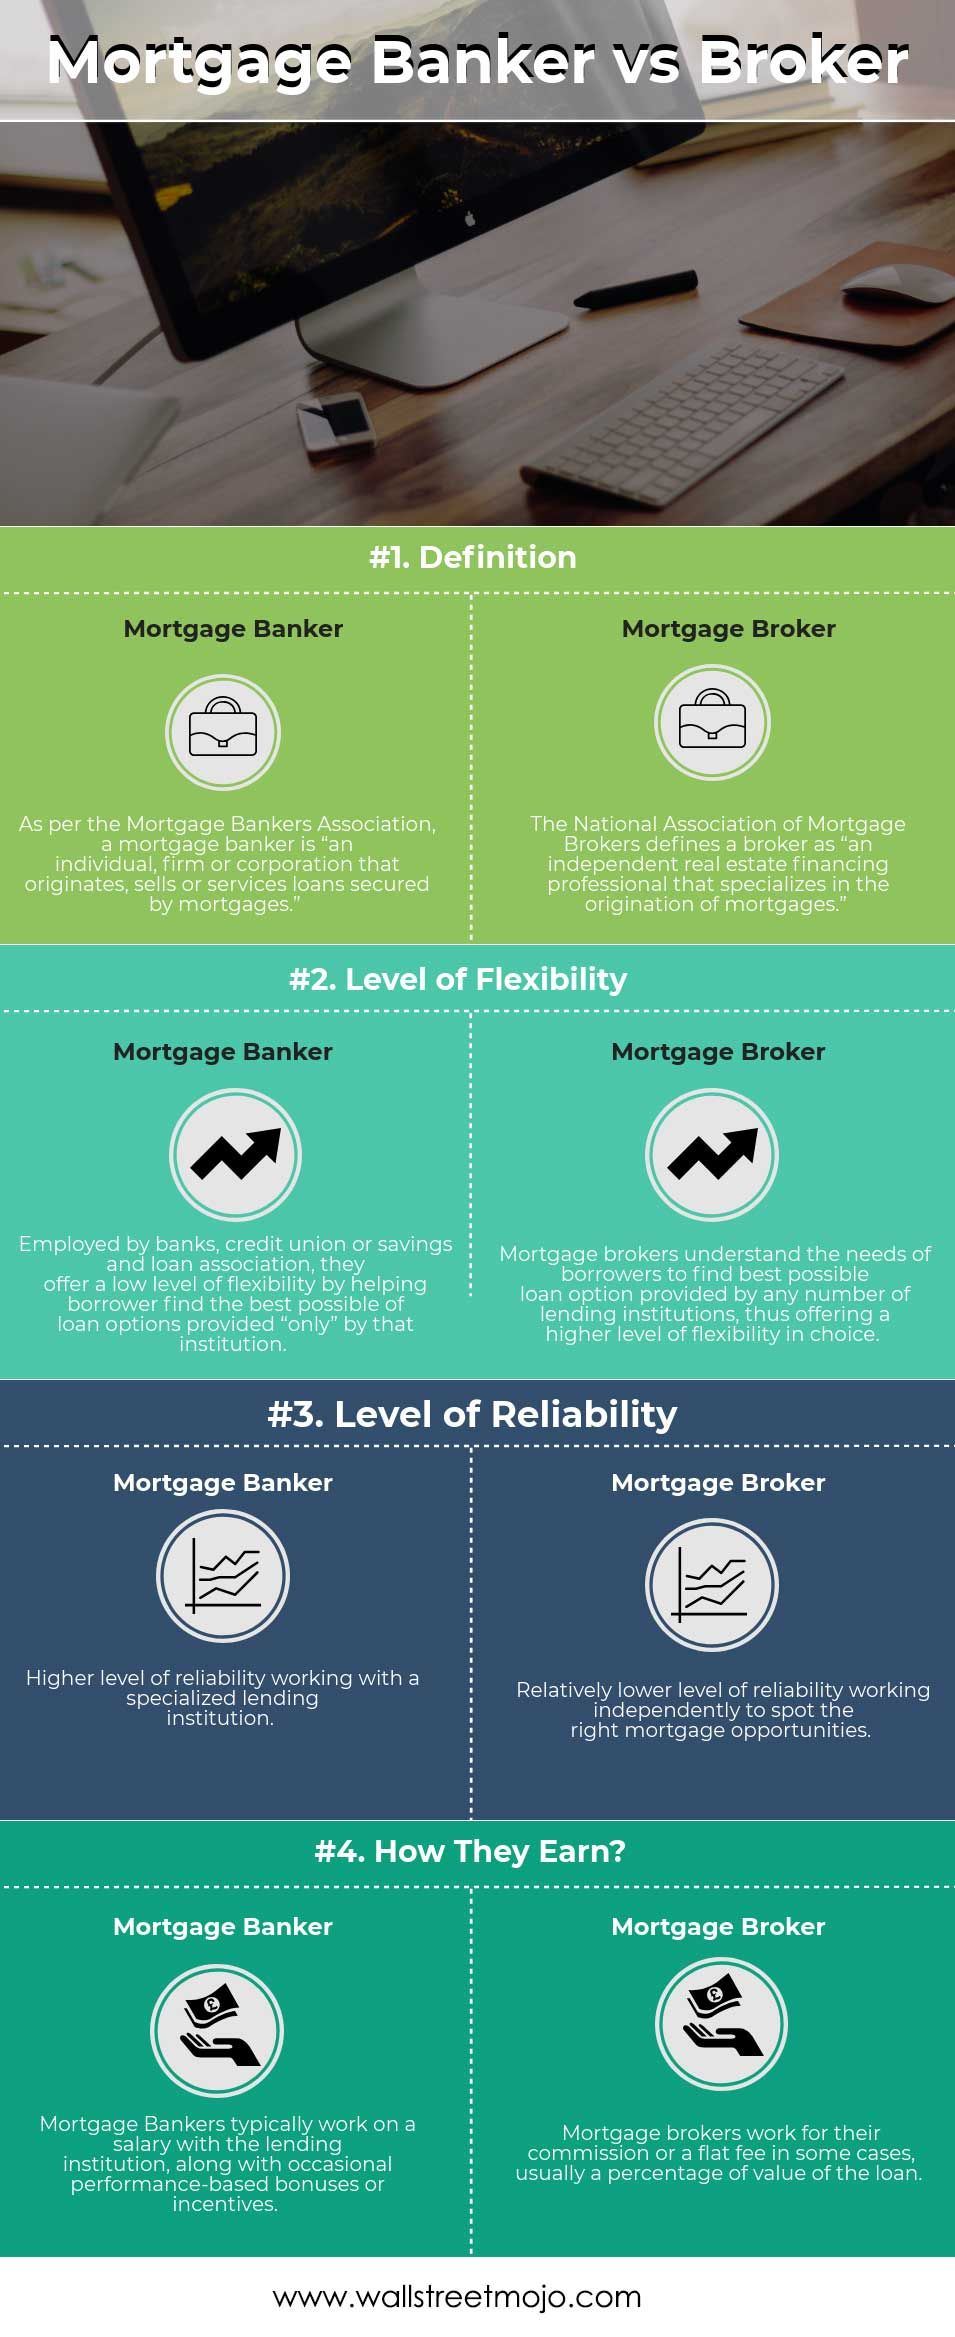 Here we provide you with the top 4 differences between Mortgage